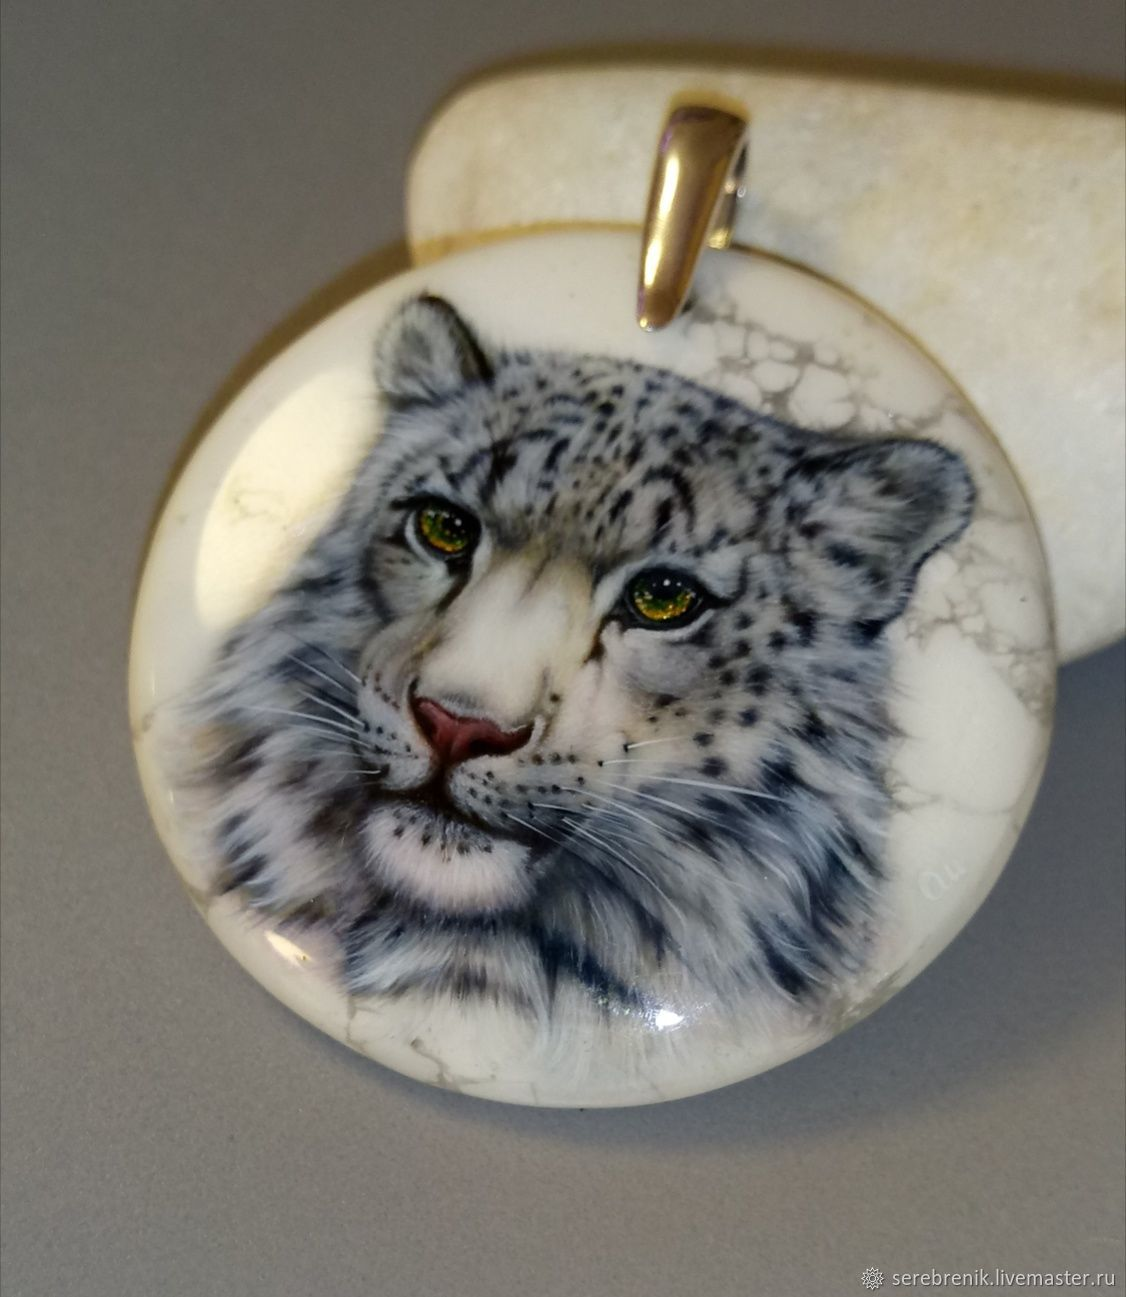 IRBIS-snow leopard - white leopard pendant with lacquer painting, Pendants, Moscow,  Фото №1